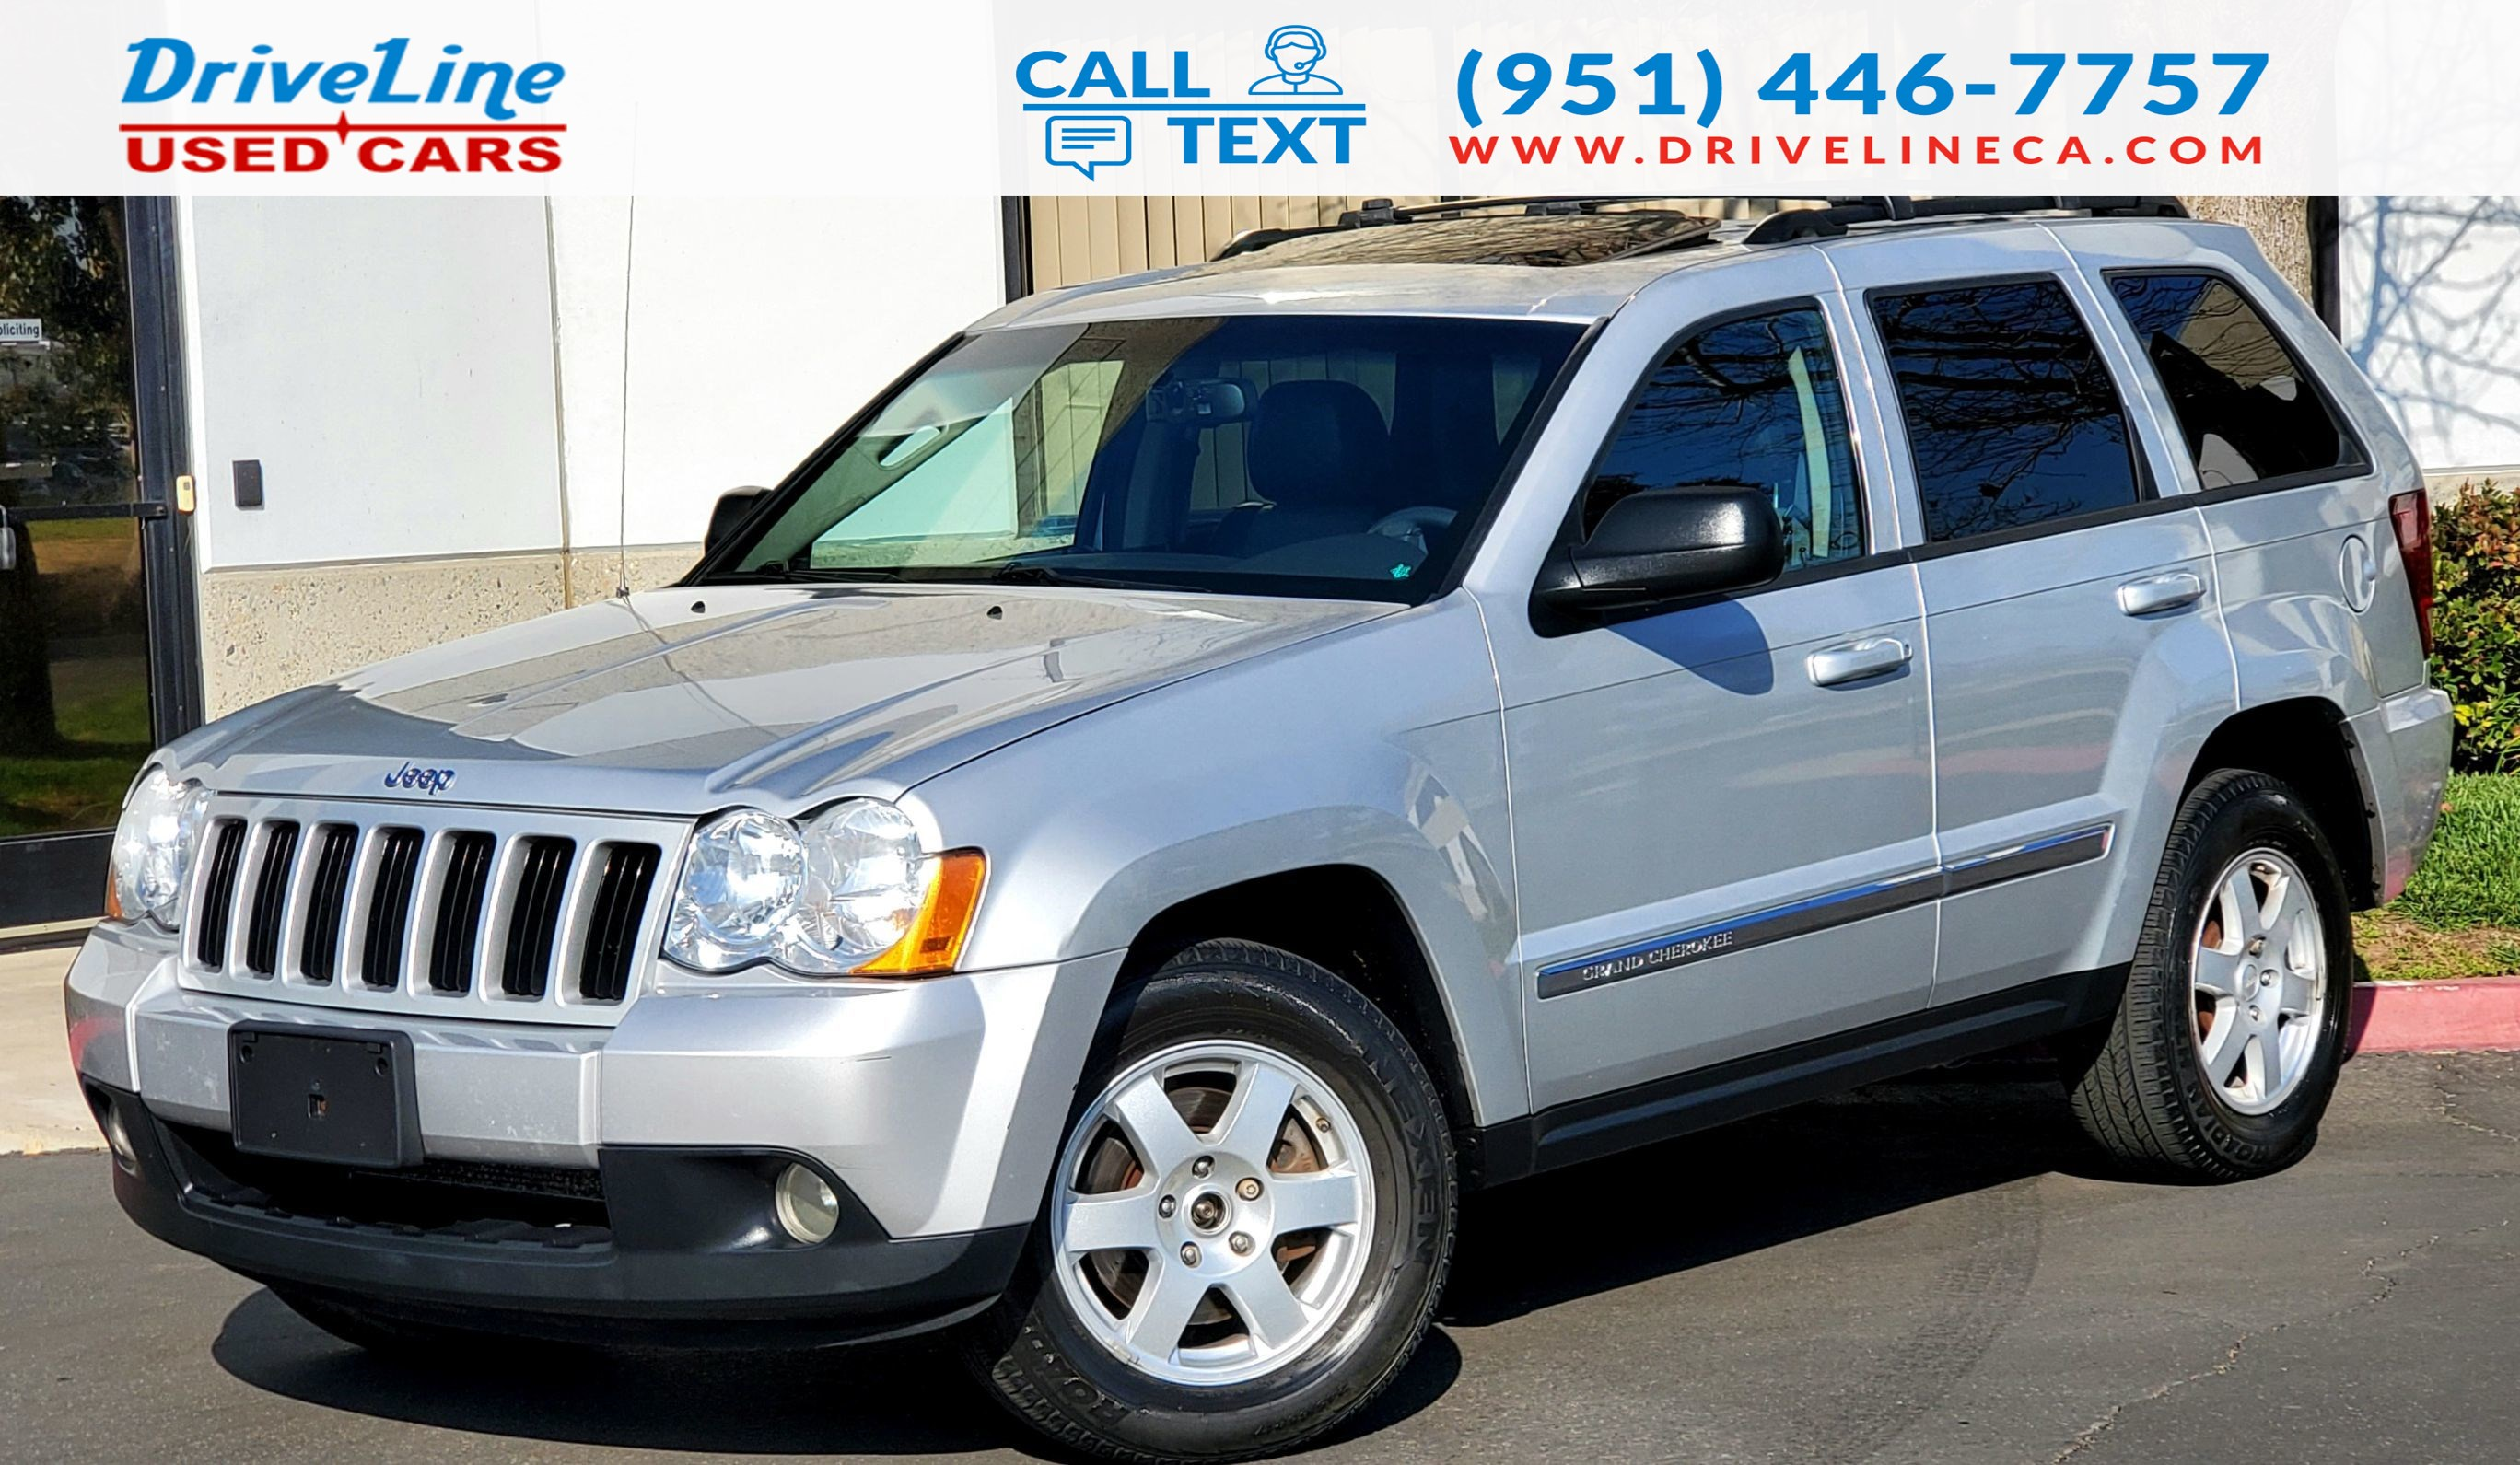 2010 Jeep Grand Cherokee Laredo - 4WD - Leather Seats - $43,335 MSRP